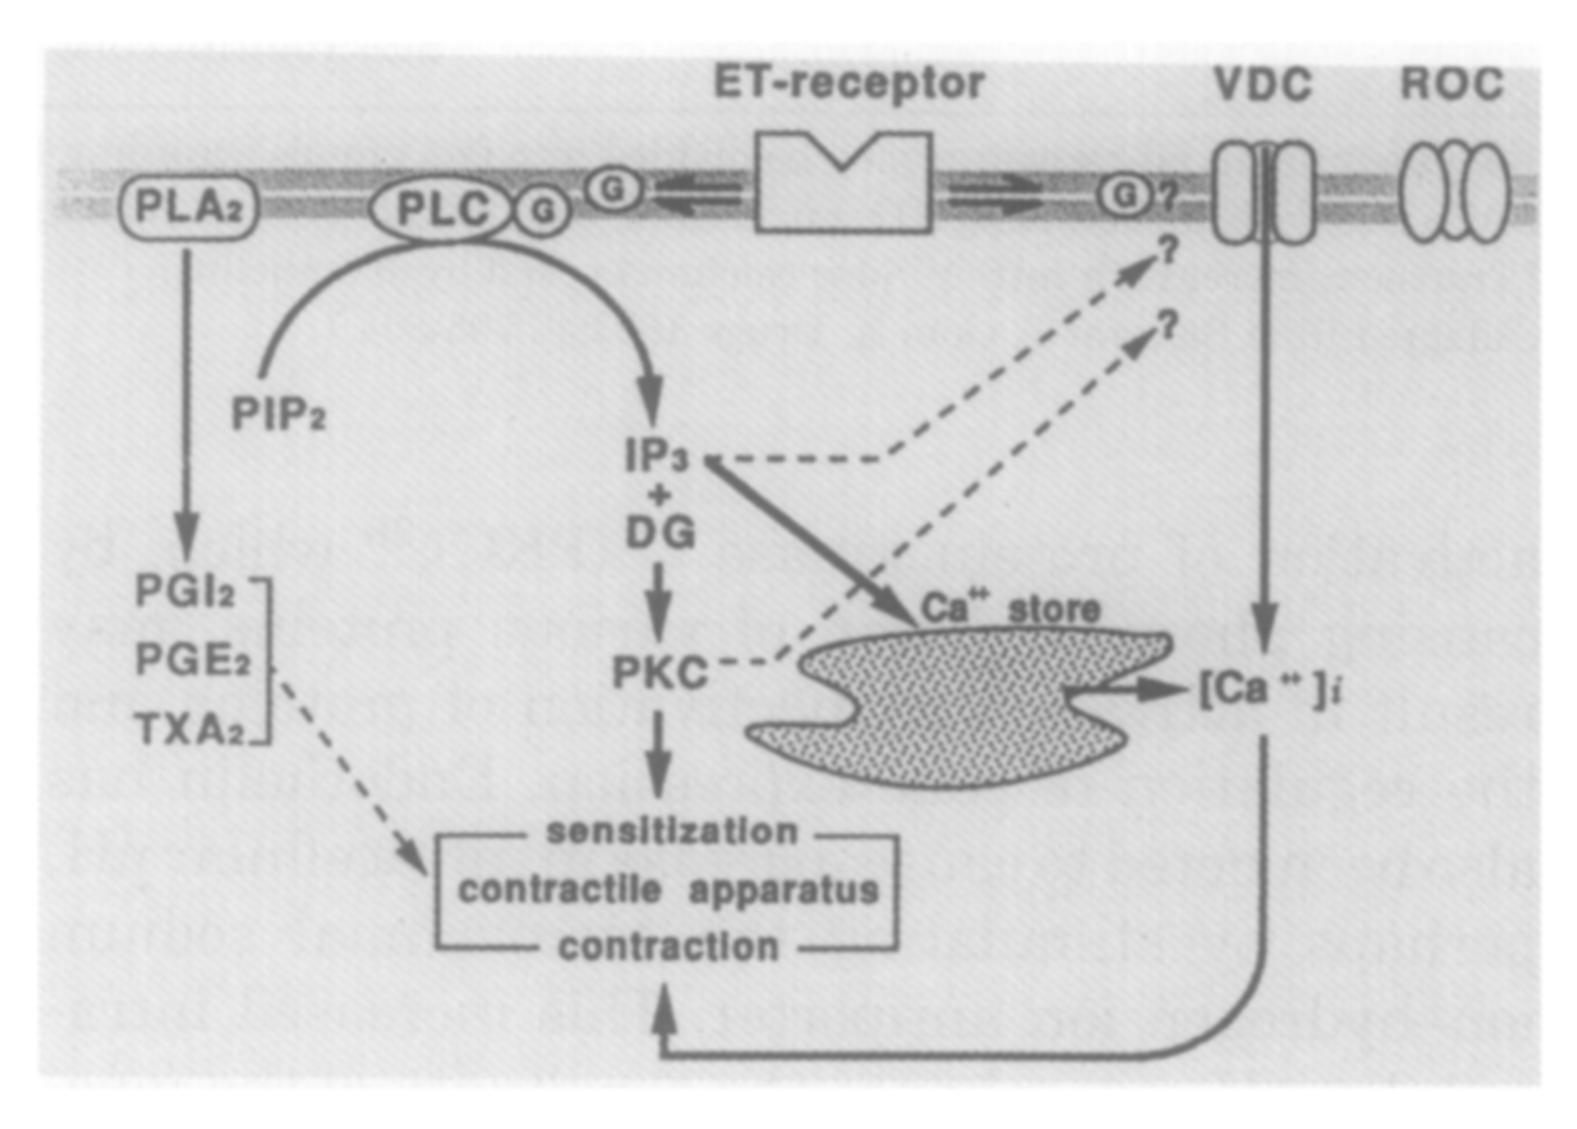 Calmodulin Leaders In Pharmaceutical Business Intelligence Lpbi Schematic Of A Crude Ecg Circuit Intracellular Signal Transduction Pathways Activated By Endothelins Ets